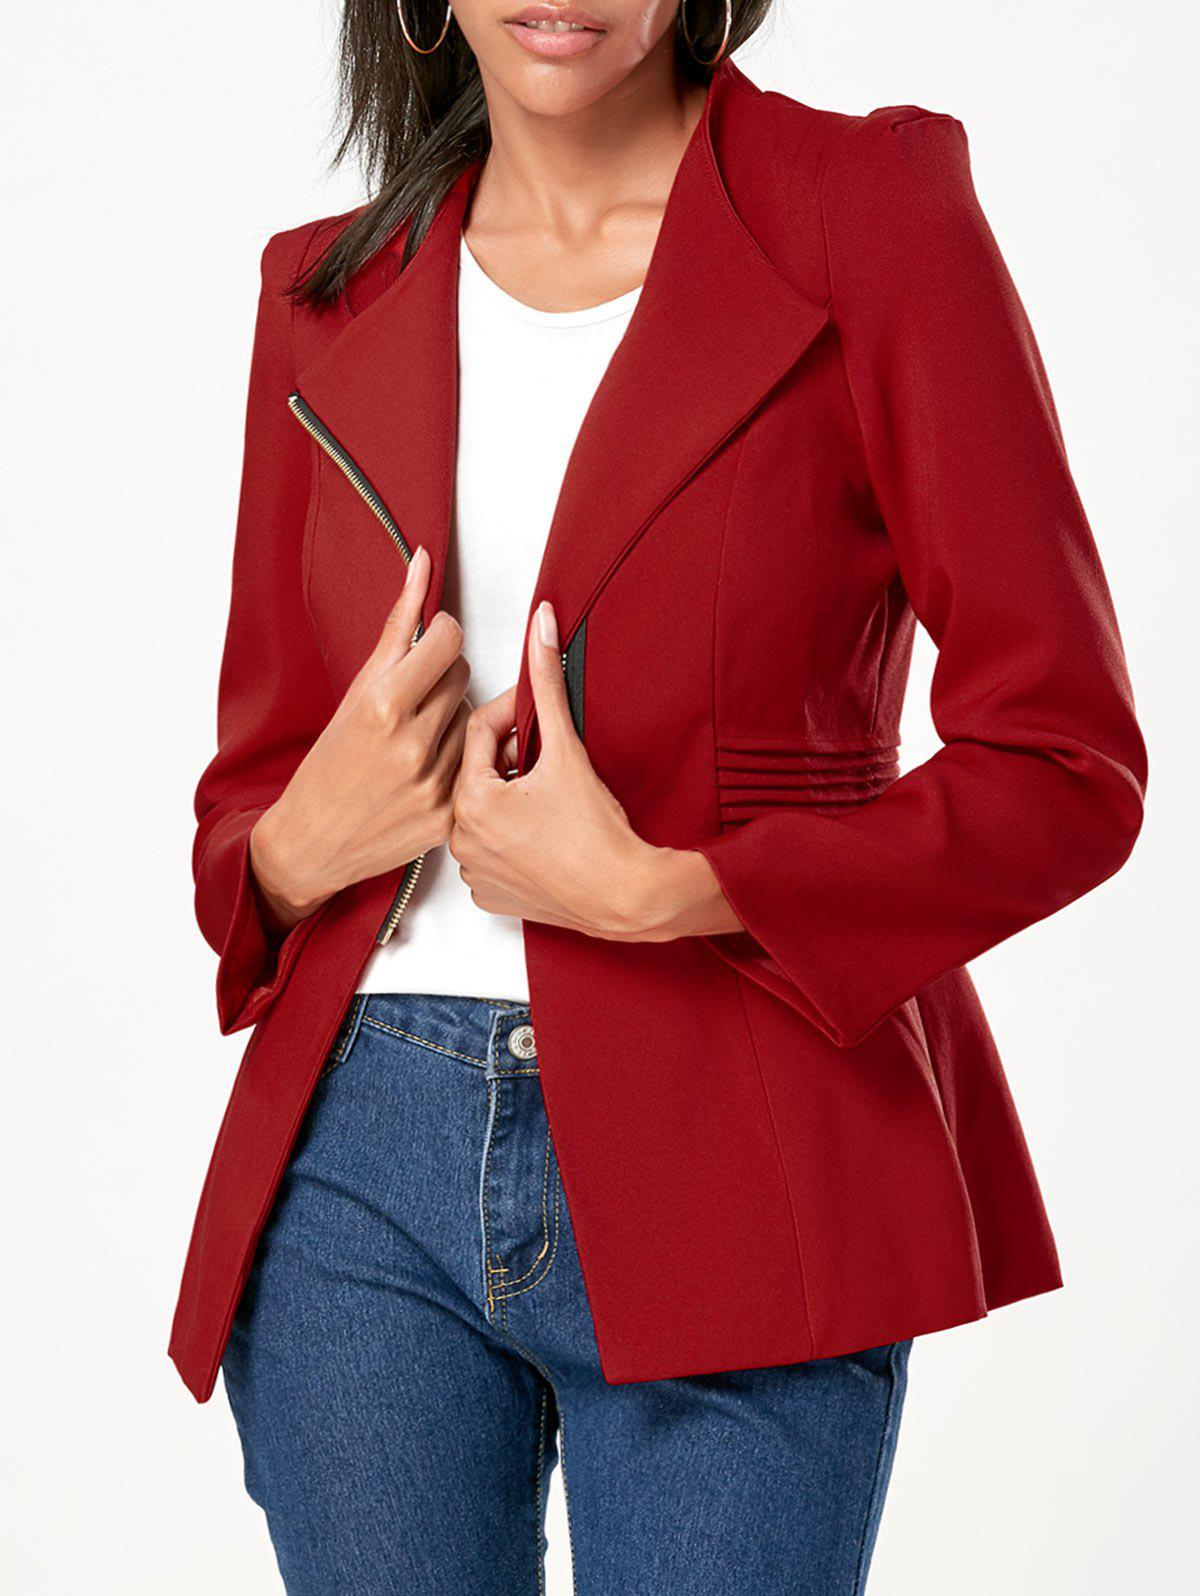 Ruched Zipper Design Tunic Blazer - Rouge vineux S